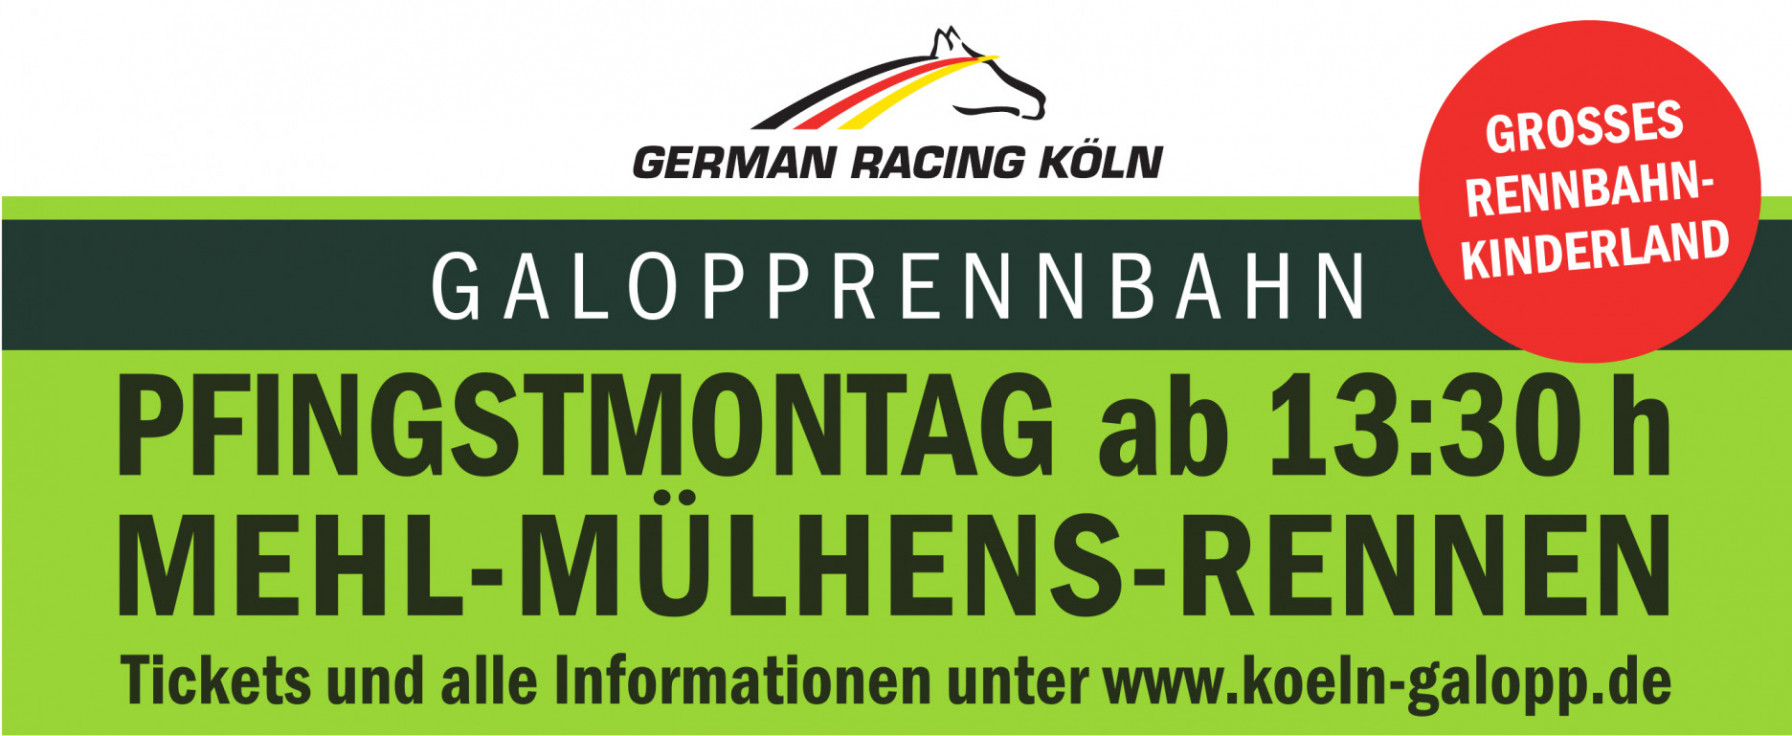 Galopprennbahn German Racing Köln